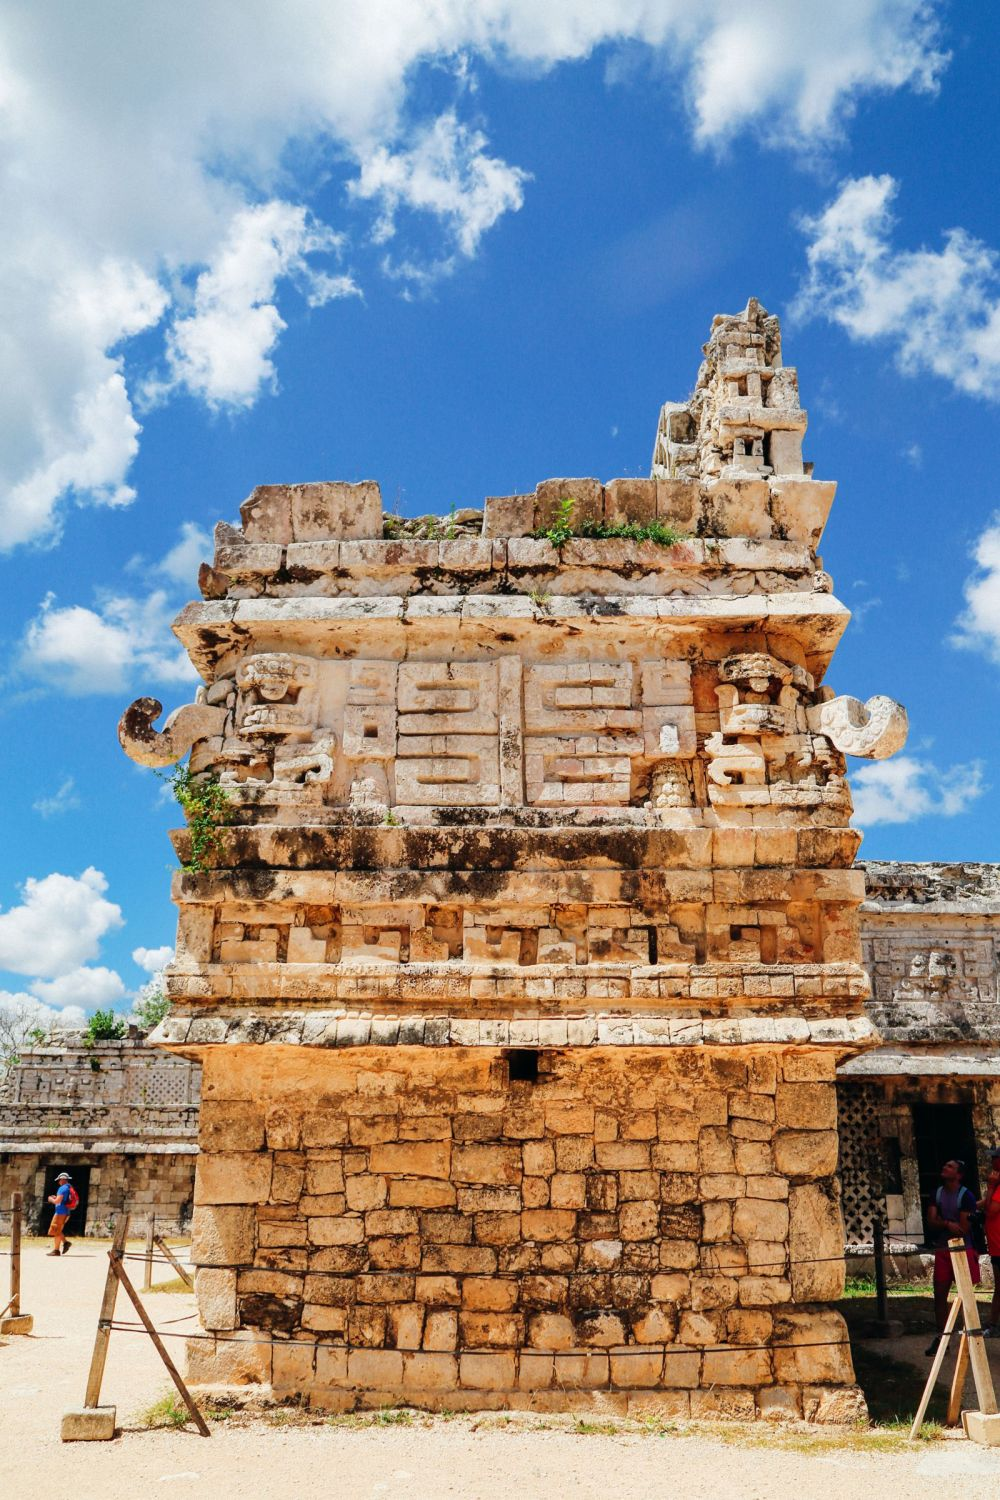 9 Things To Do When You Visit Cancun In Mexico That Don't Involve Partying (13)